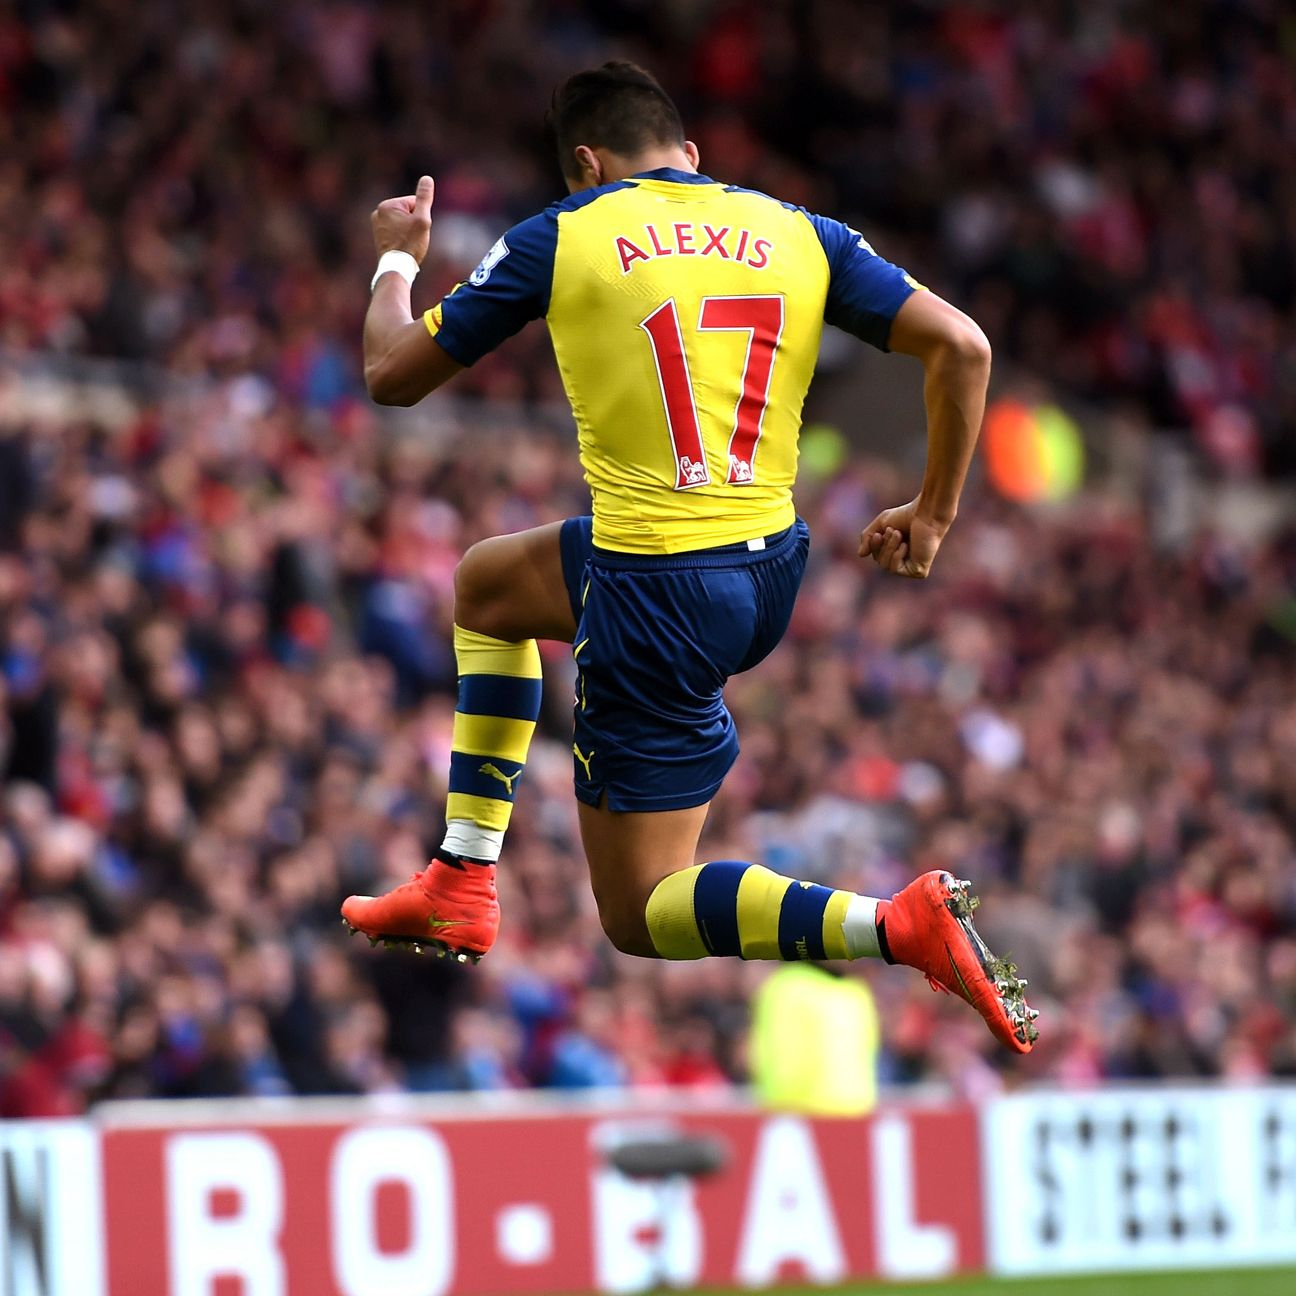 Fantasy managers with Alexis Sanchez were jumping for joy following the Chilean's brace versus Sunderland.